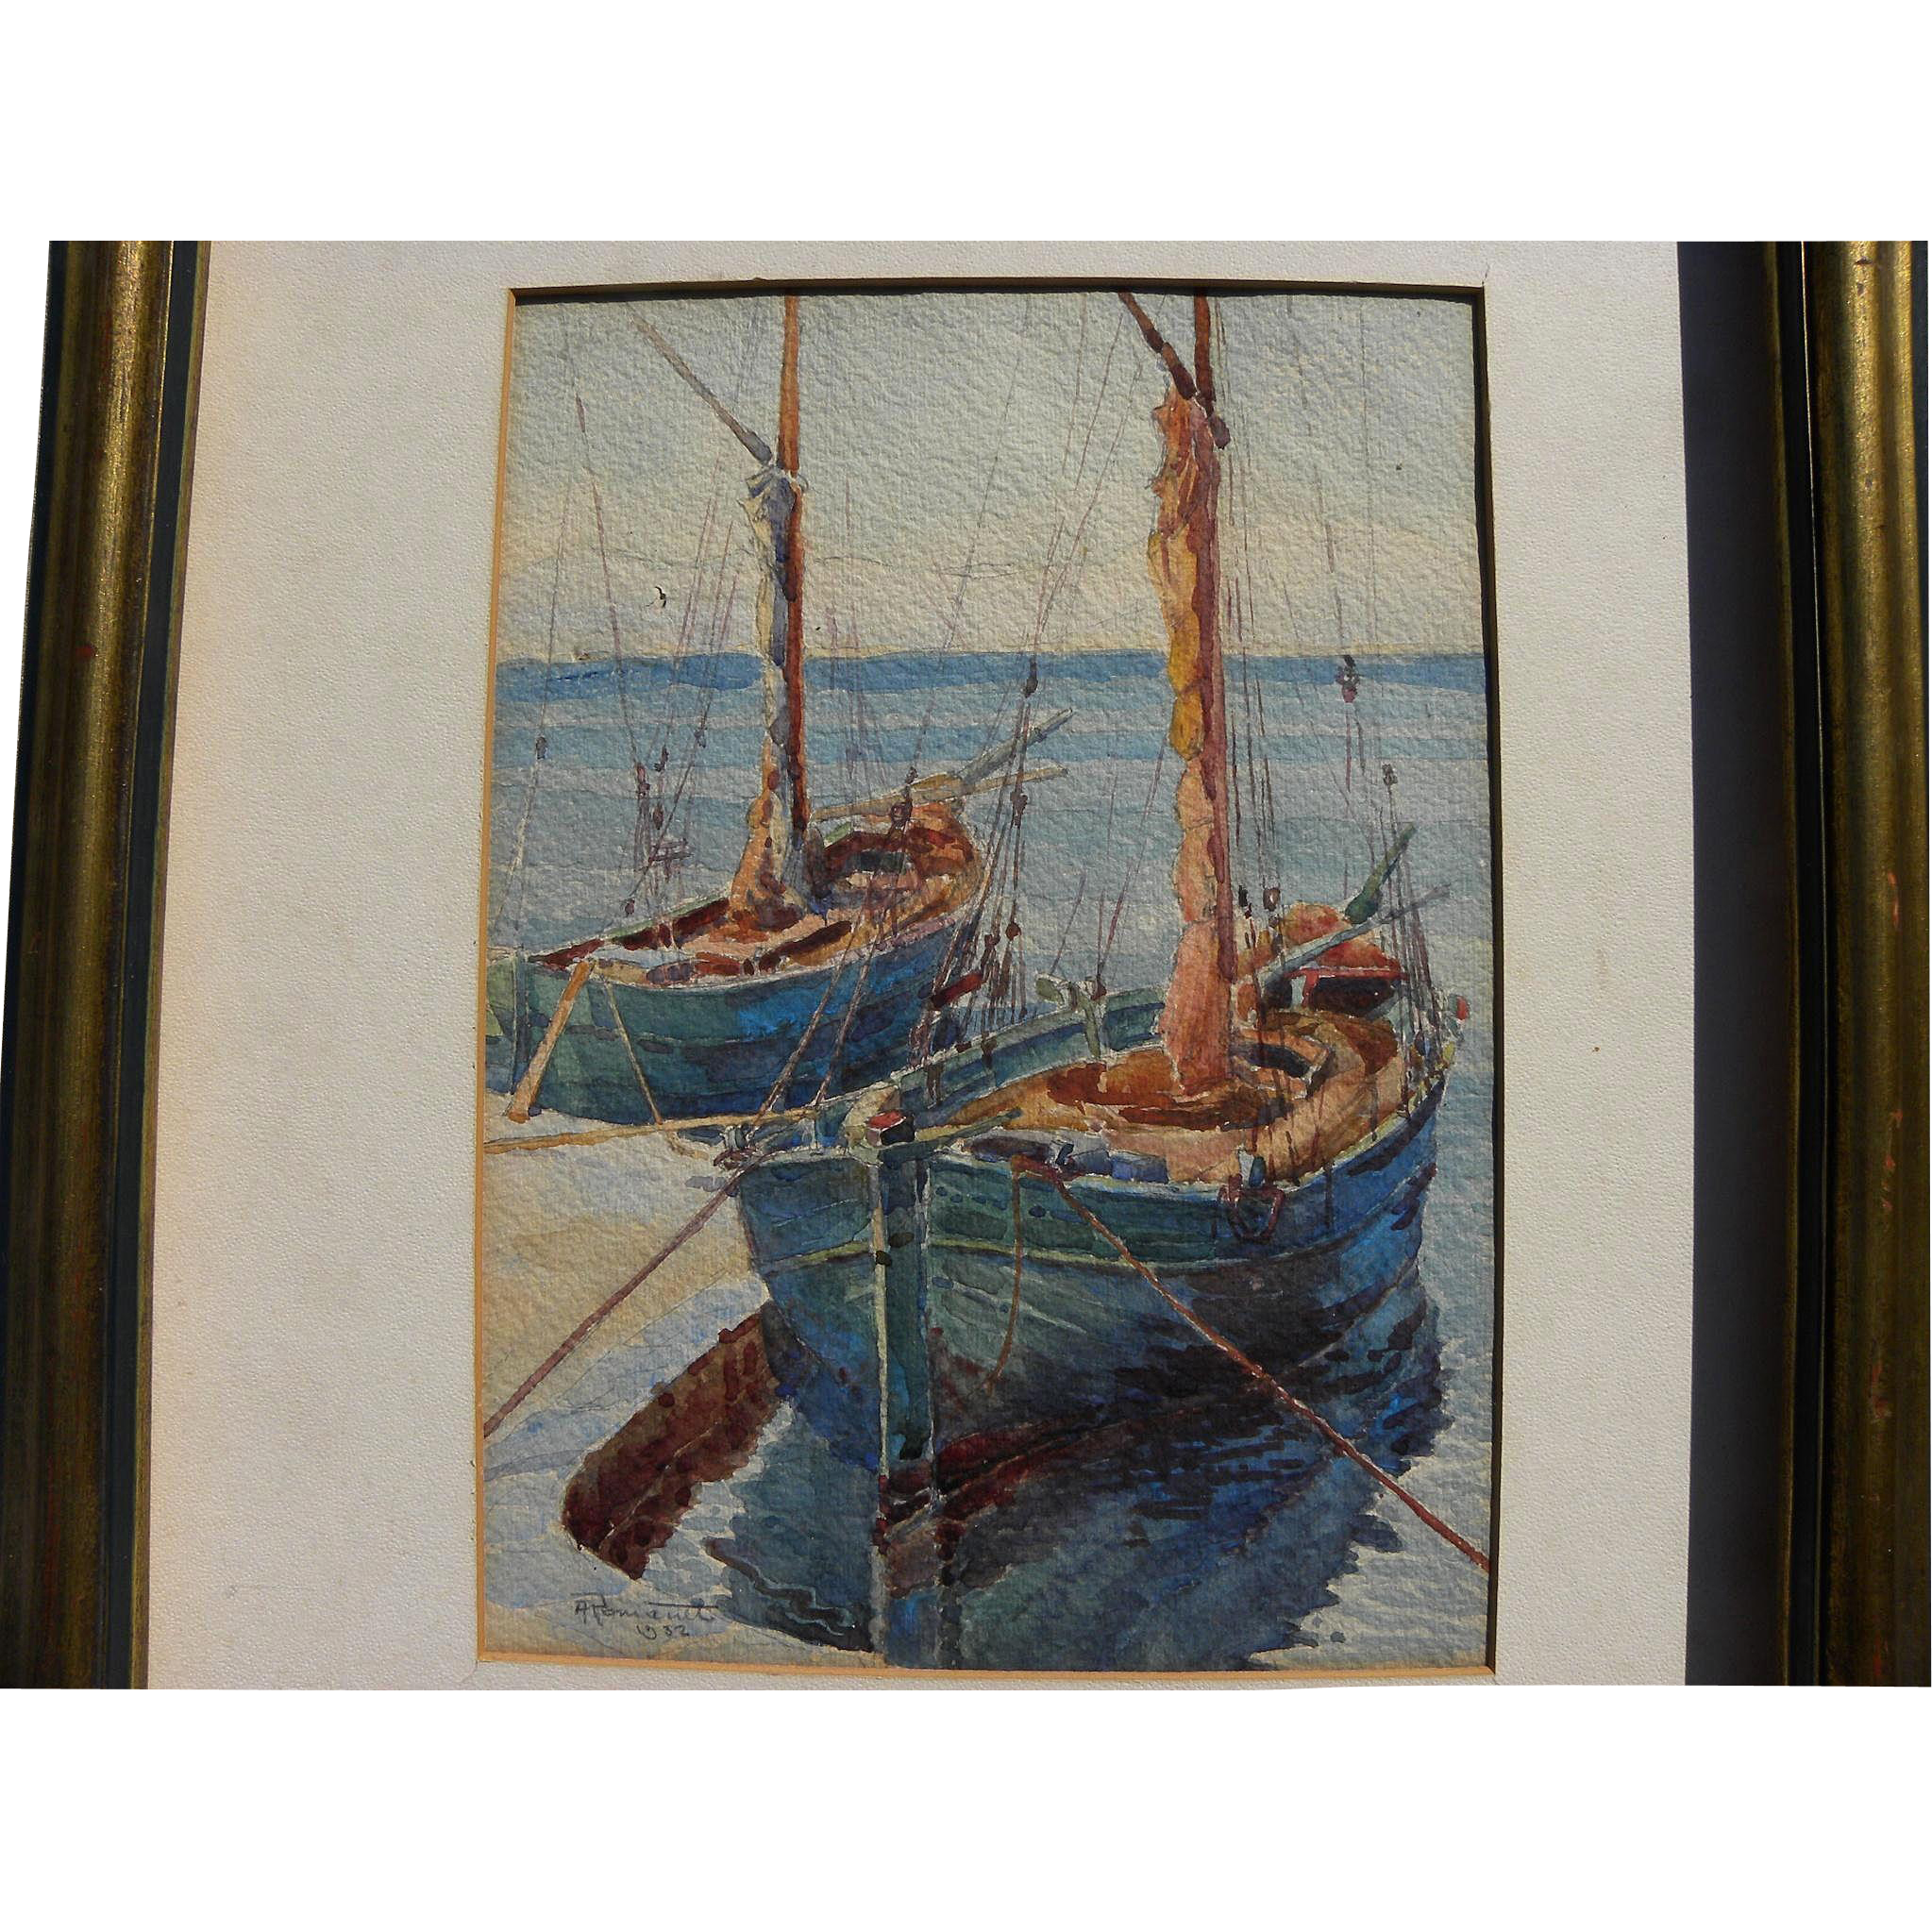 Detailed 1932 watercolor painting of boats and rigging signed ROMANET